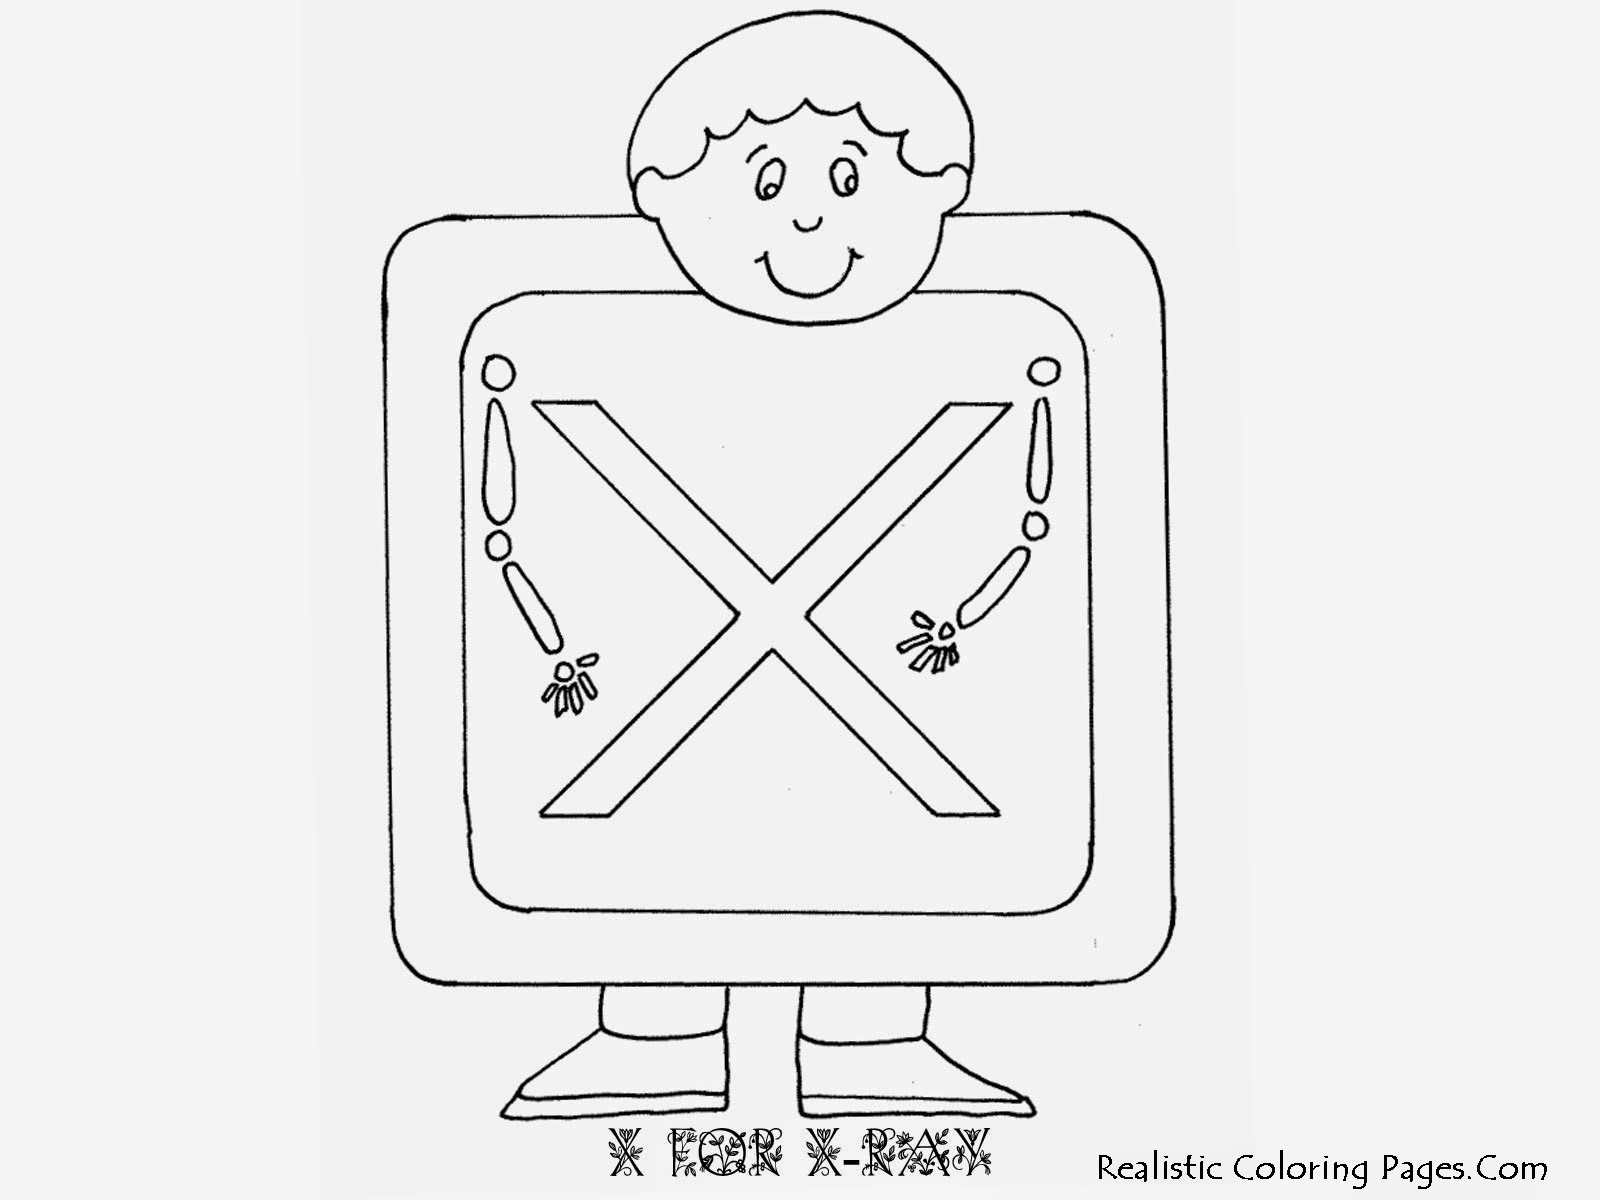 Alphabet Coloring Pages X FOR X-RAY